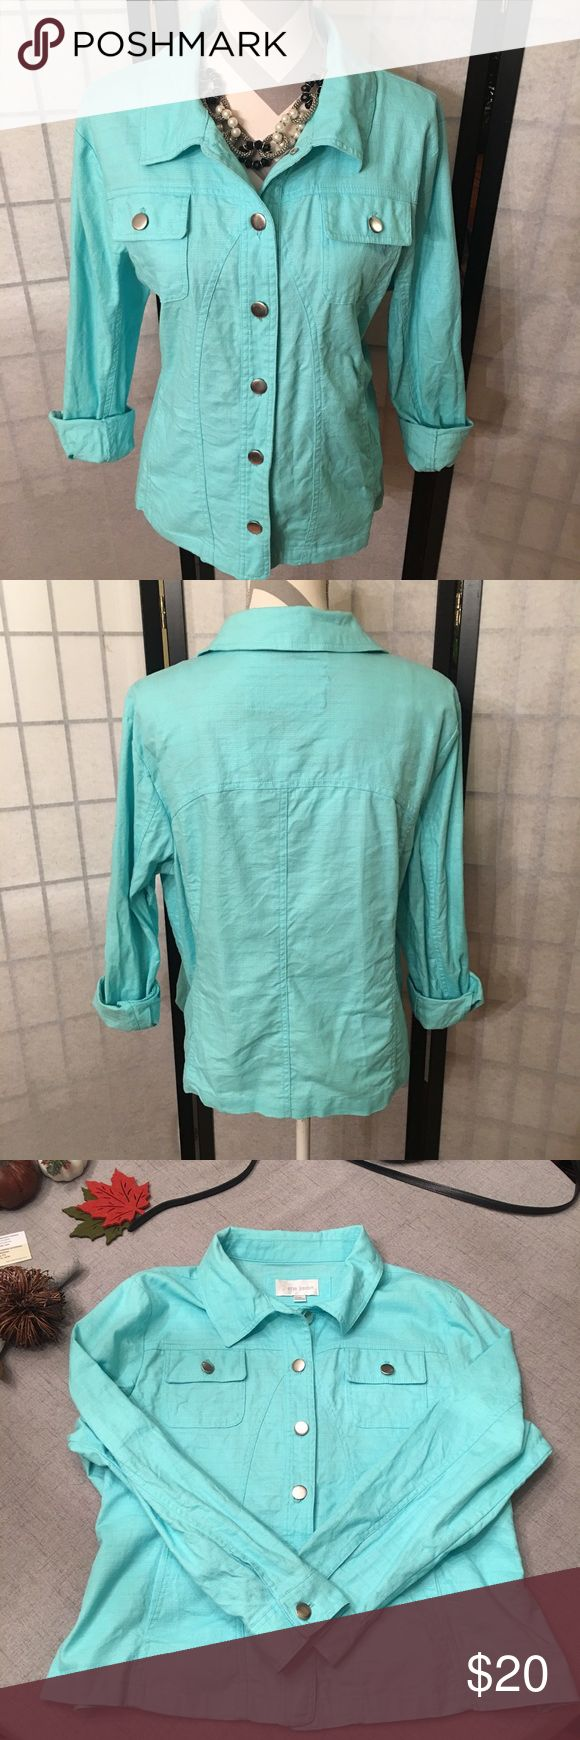 Aqua Jean Jacket 🌟🌟 Beautiful Color Erin London aqua colored Jean Jacket. It is slightly lighter weight than a Jean Jacket, fabric content is 99% Cotton and 1% spandex. Size 1X and very true to size. 2 side pockets in front. No flaws, like new.   Happy to bundle, I will promptly answer any questions :) Follow me to see new items.   Clean, non smoking home. Erin London Jackets & Coats Jean Jackets